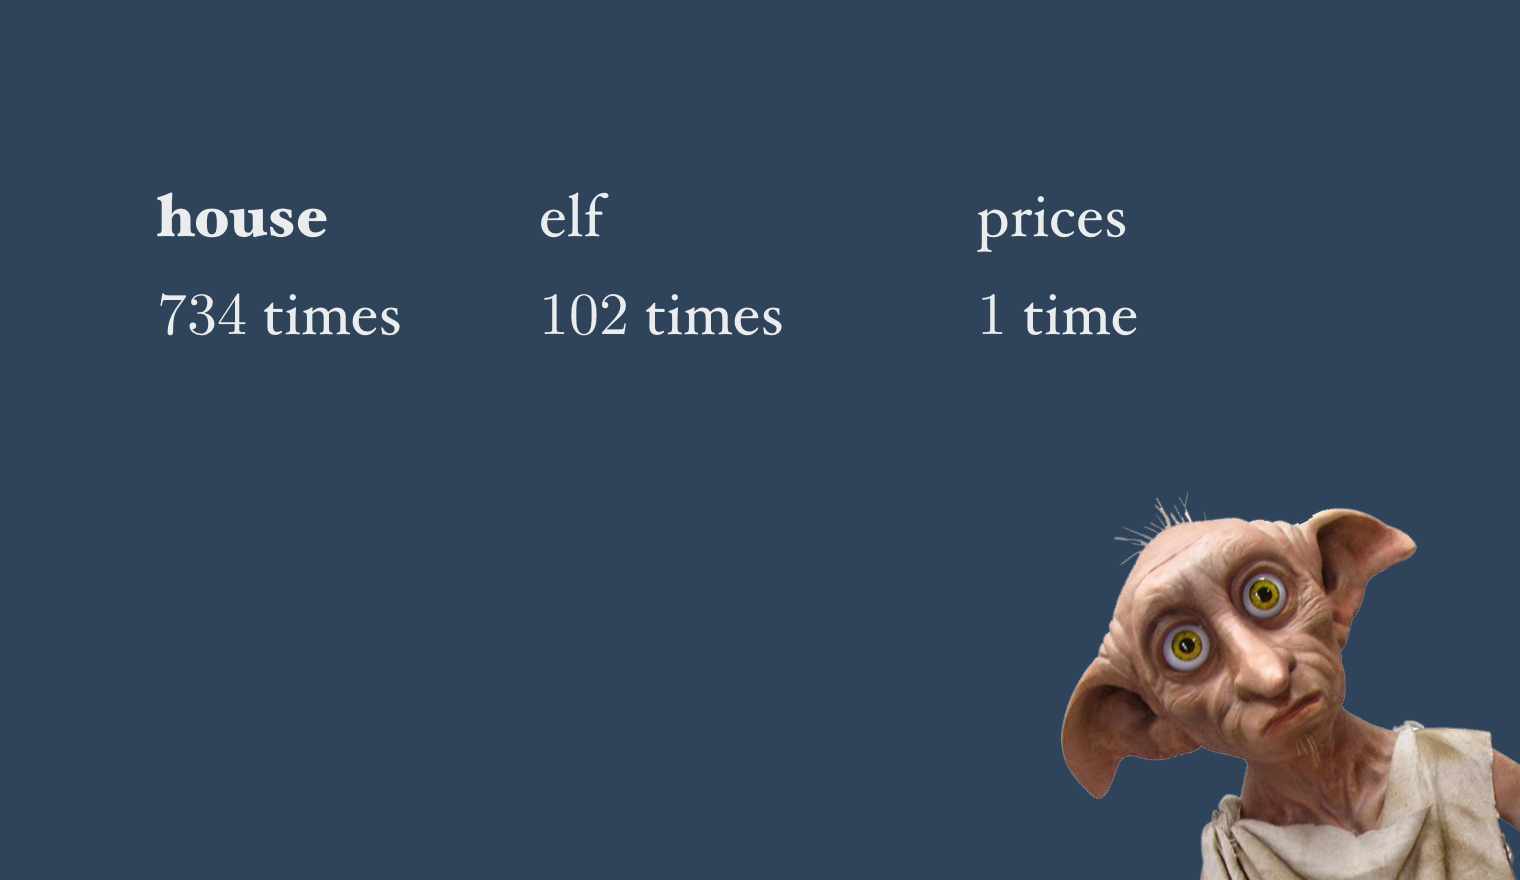 """house"" is followed by ""elf"" 102 times and ""prices"" 1 time"